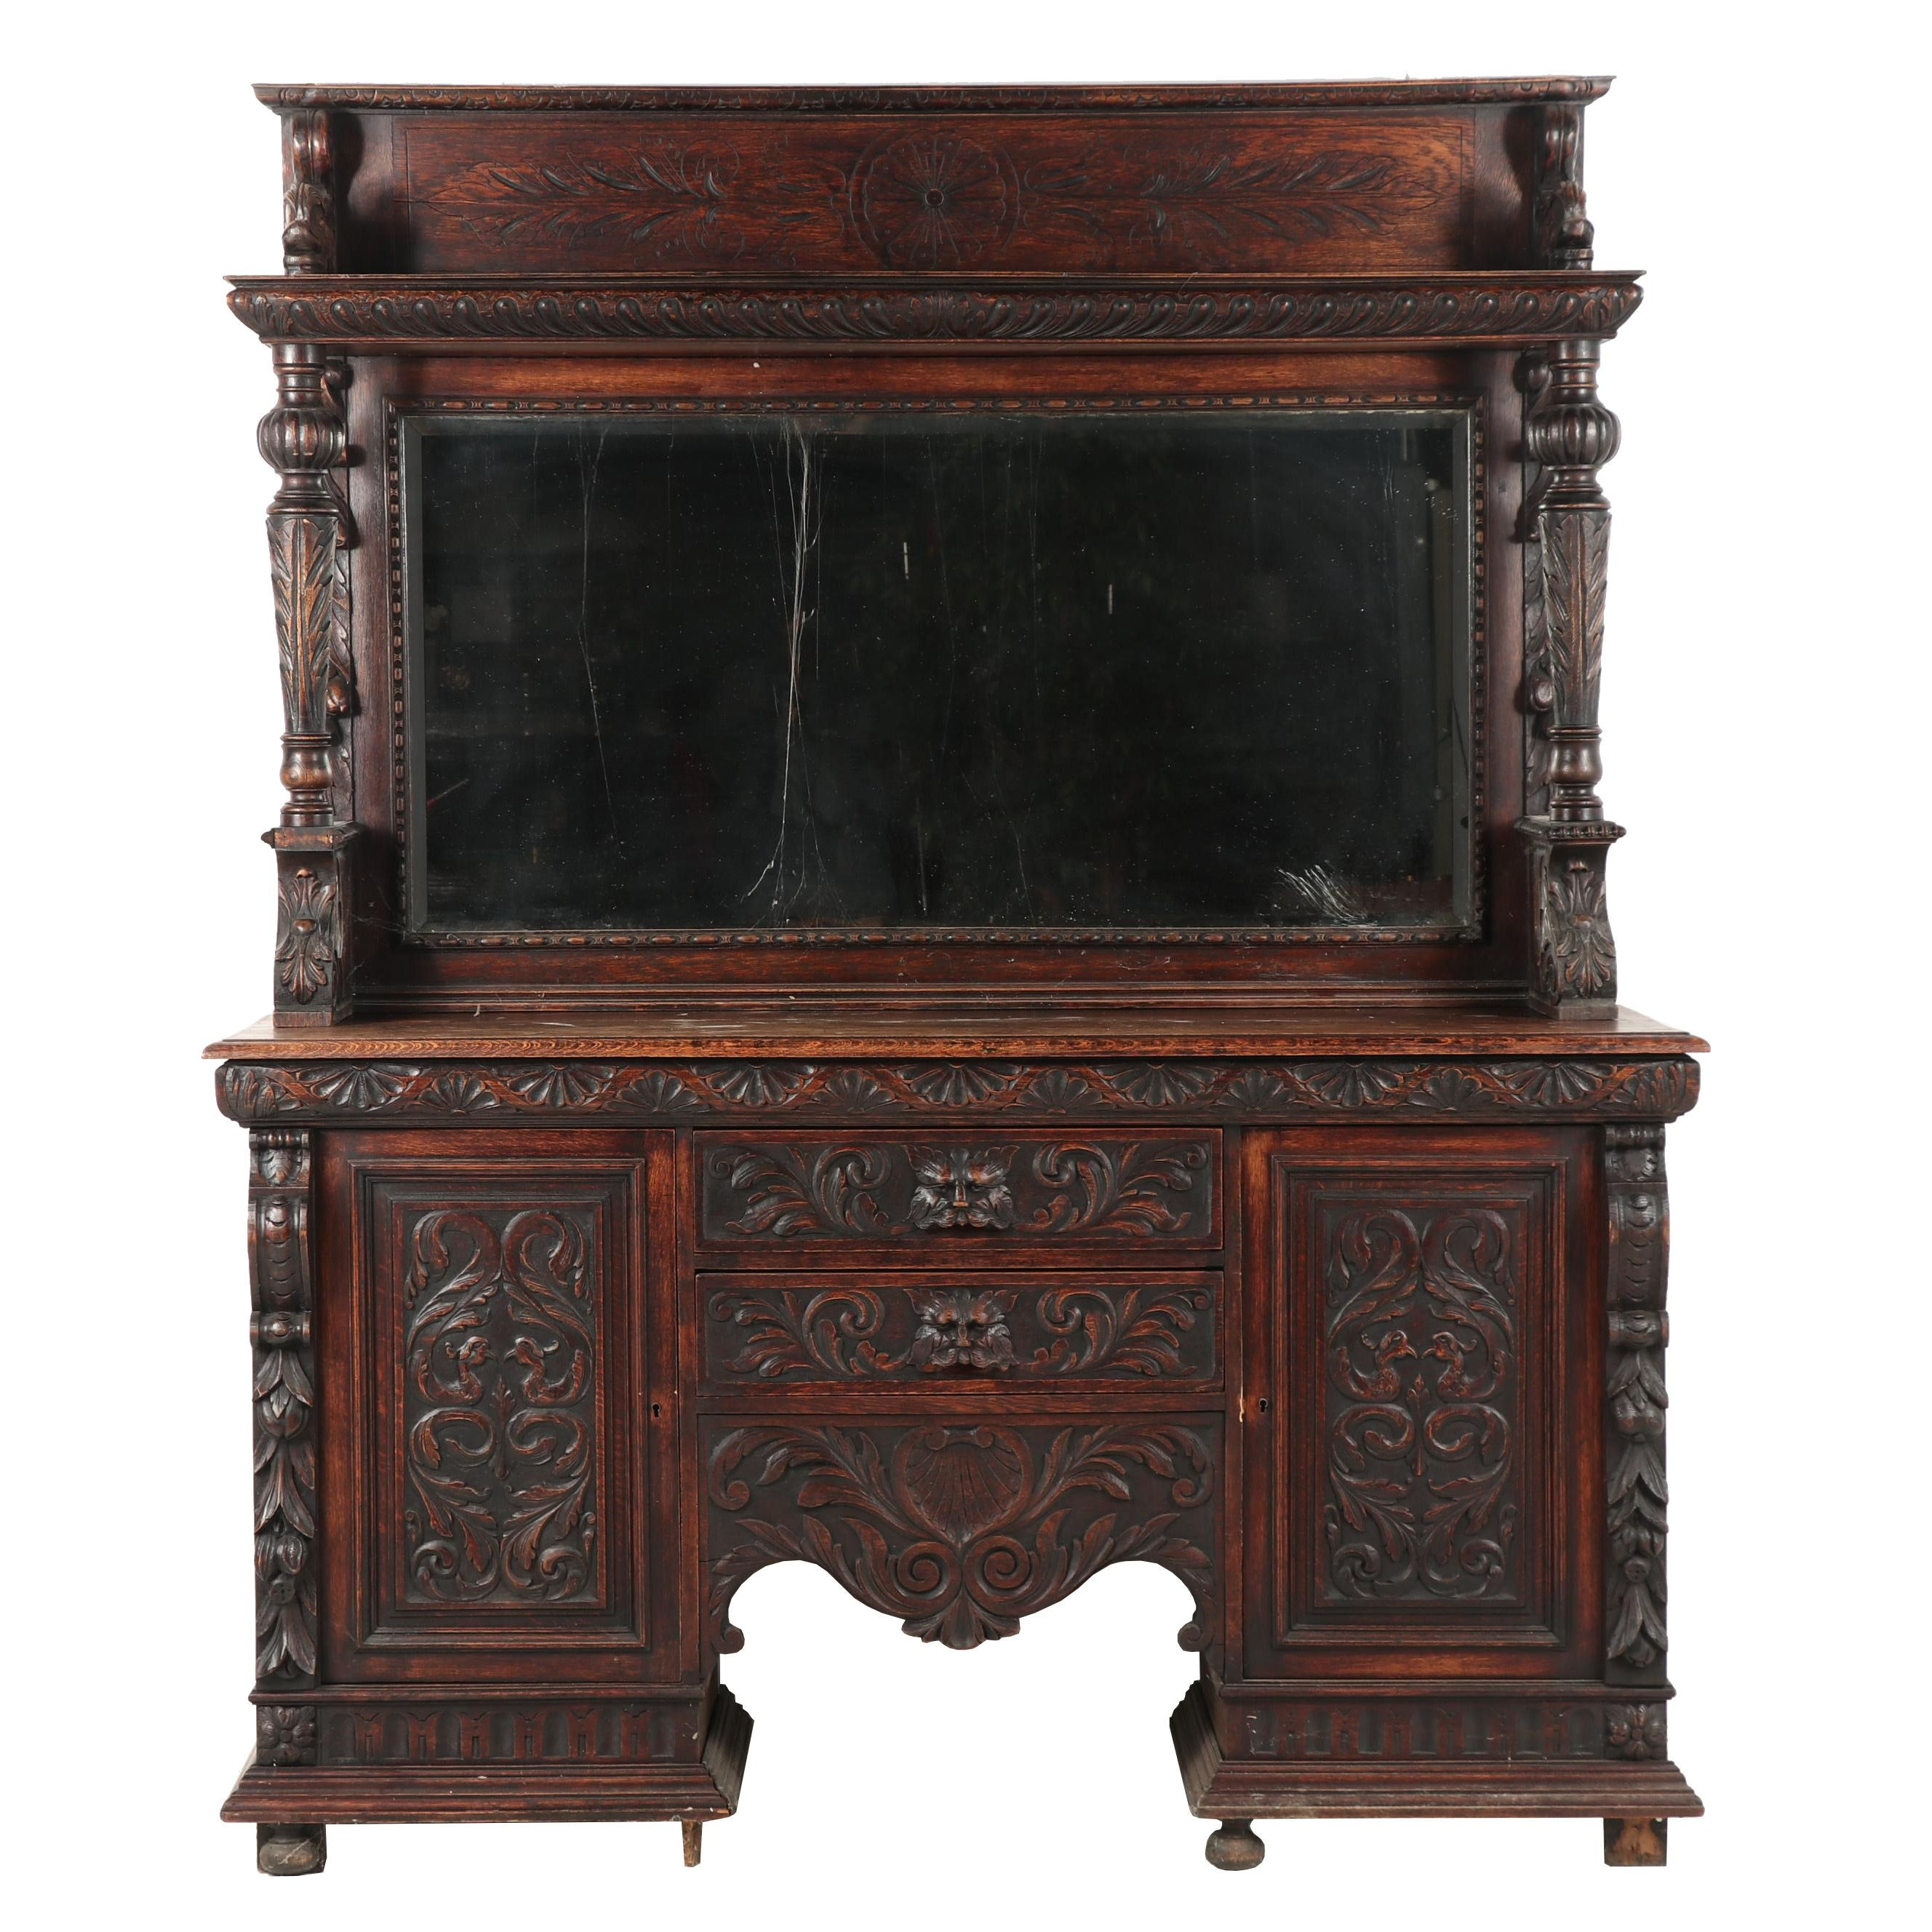 Renaissance Revival Carved English Oak Sideboard with Mirror, Late 19th Century